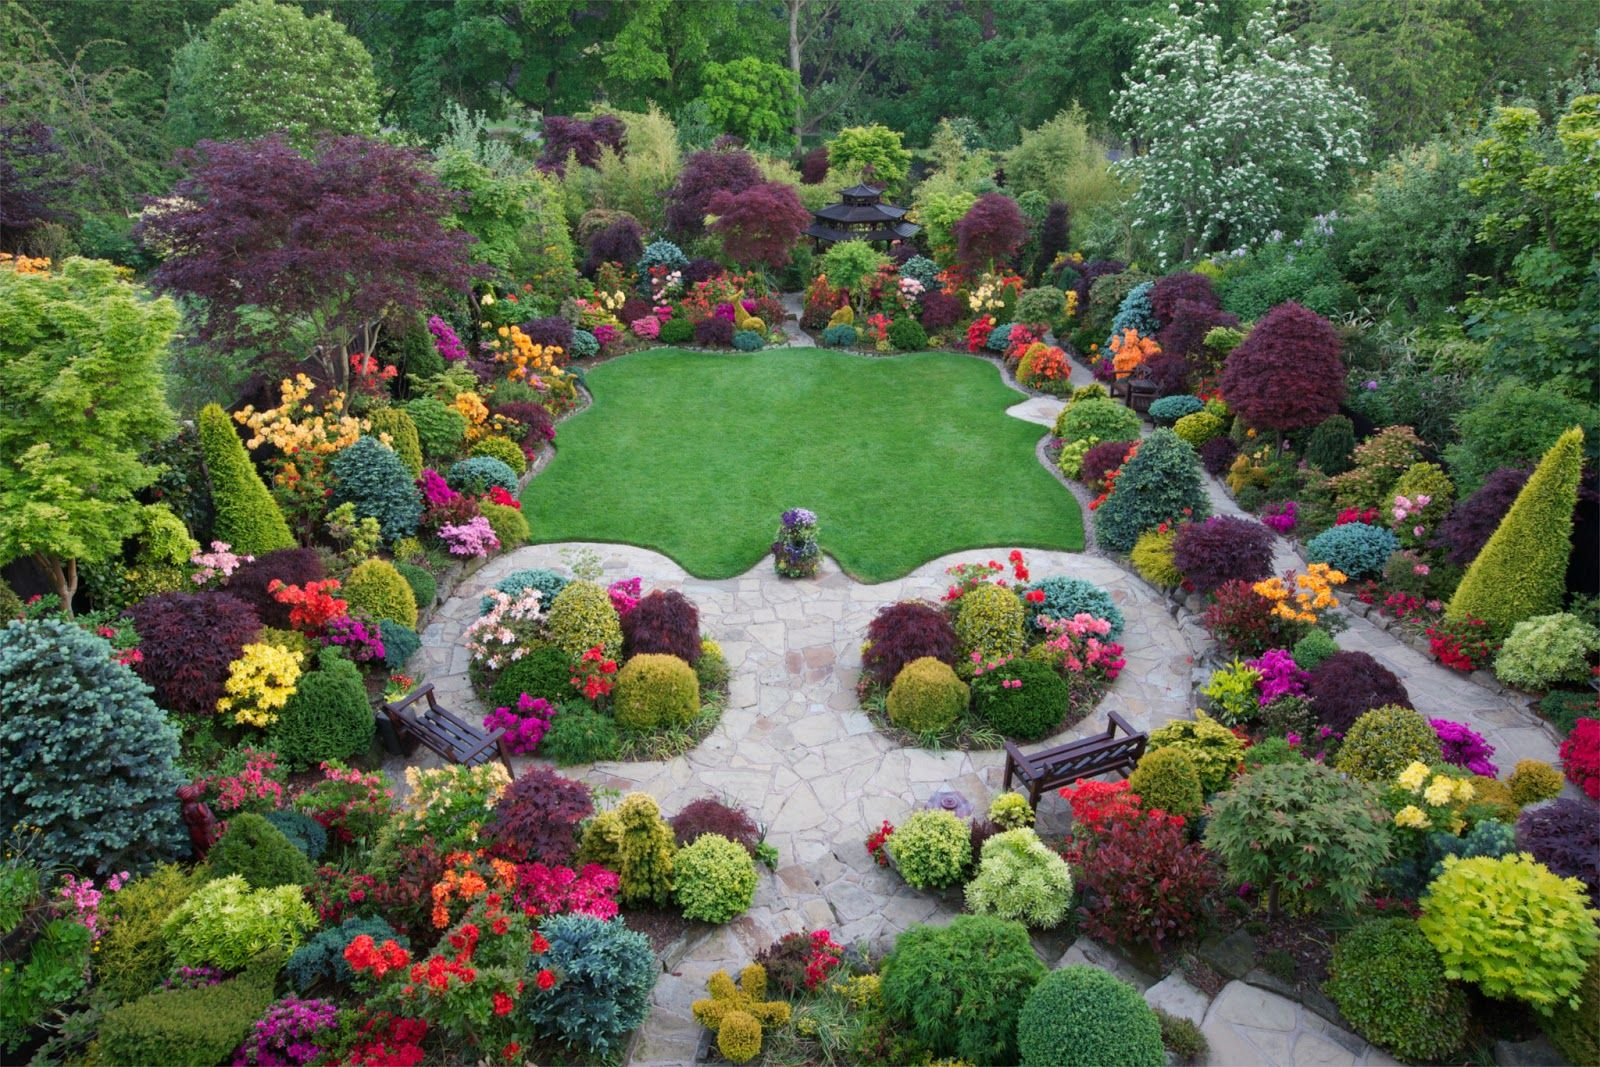 Beautiful gardens - Homegardens In Germany Four Seasons Garden The Most Beautiful Home Gardens In The World